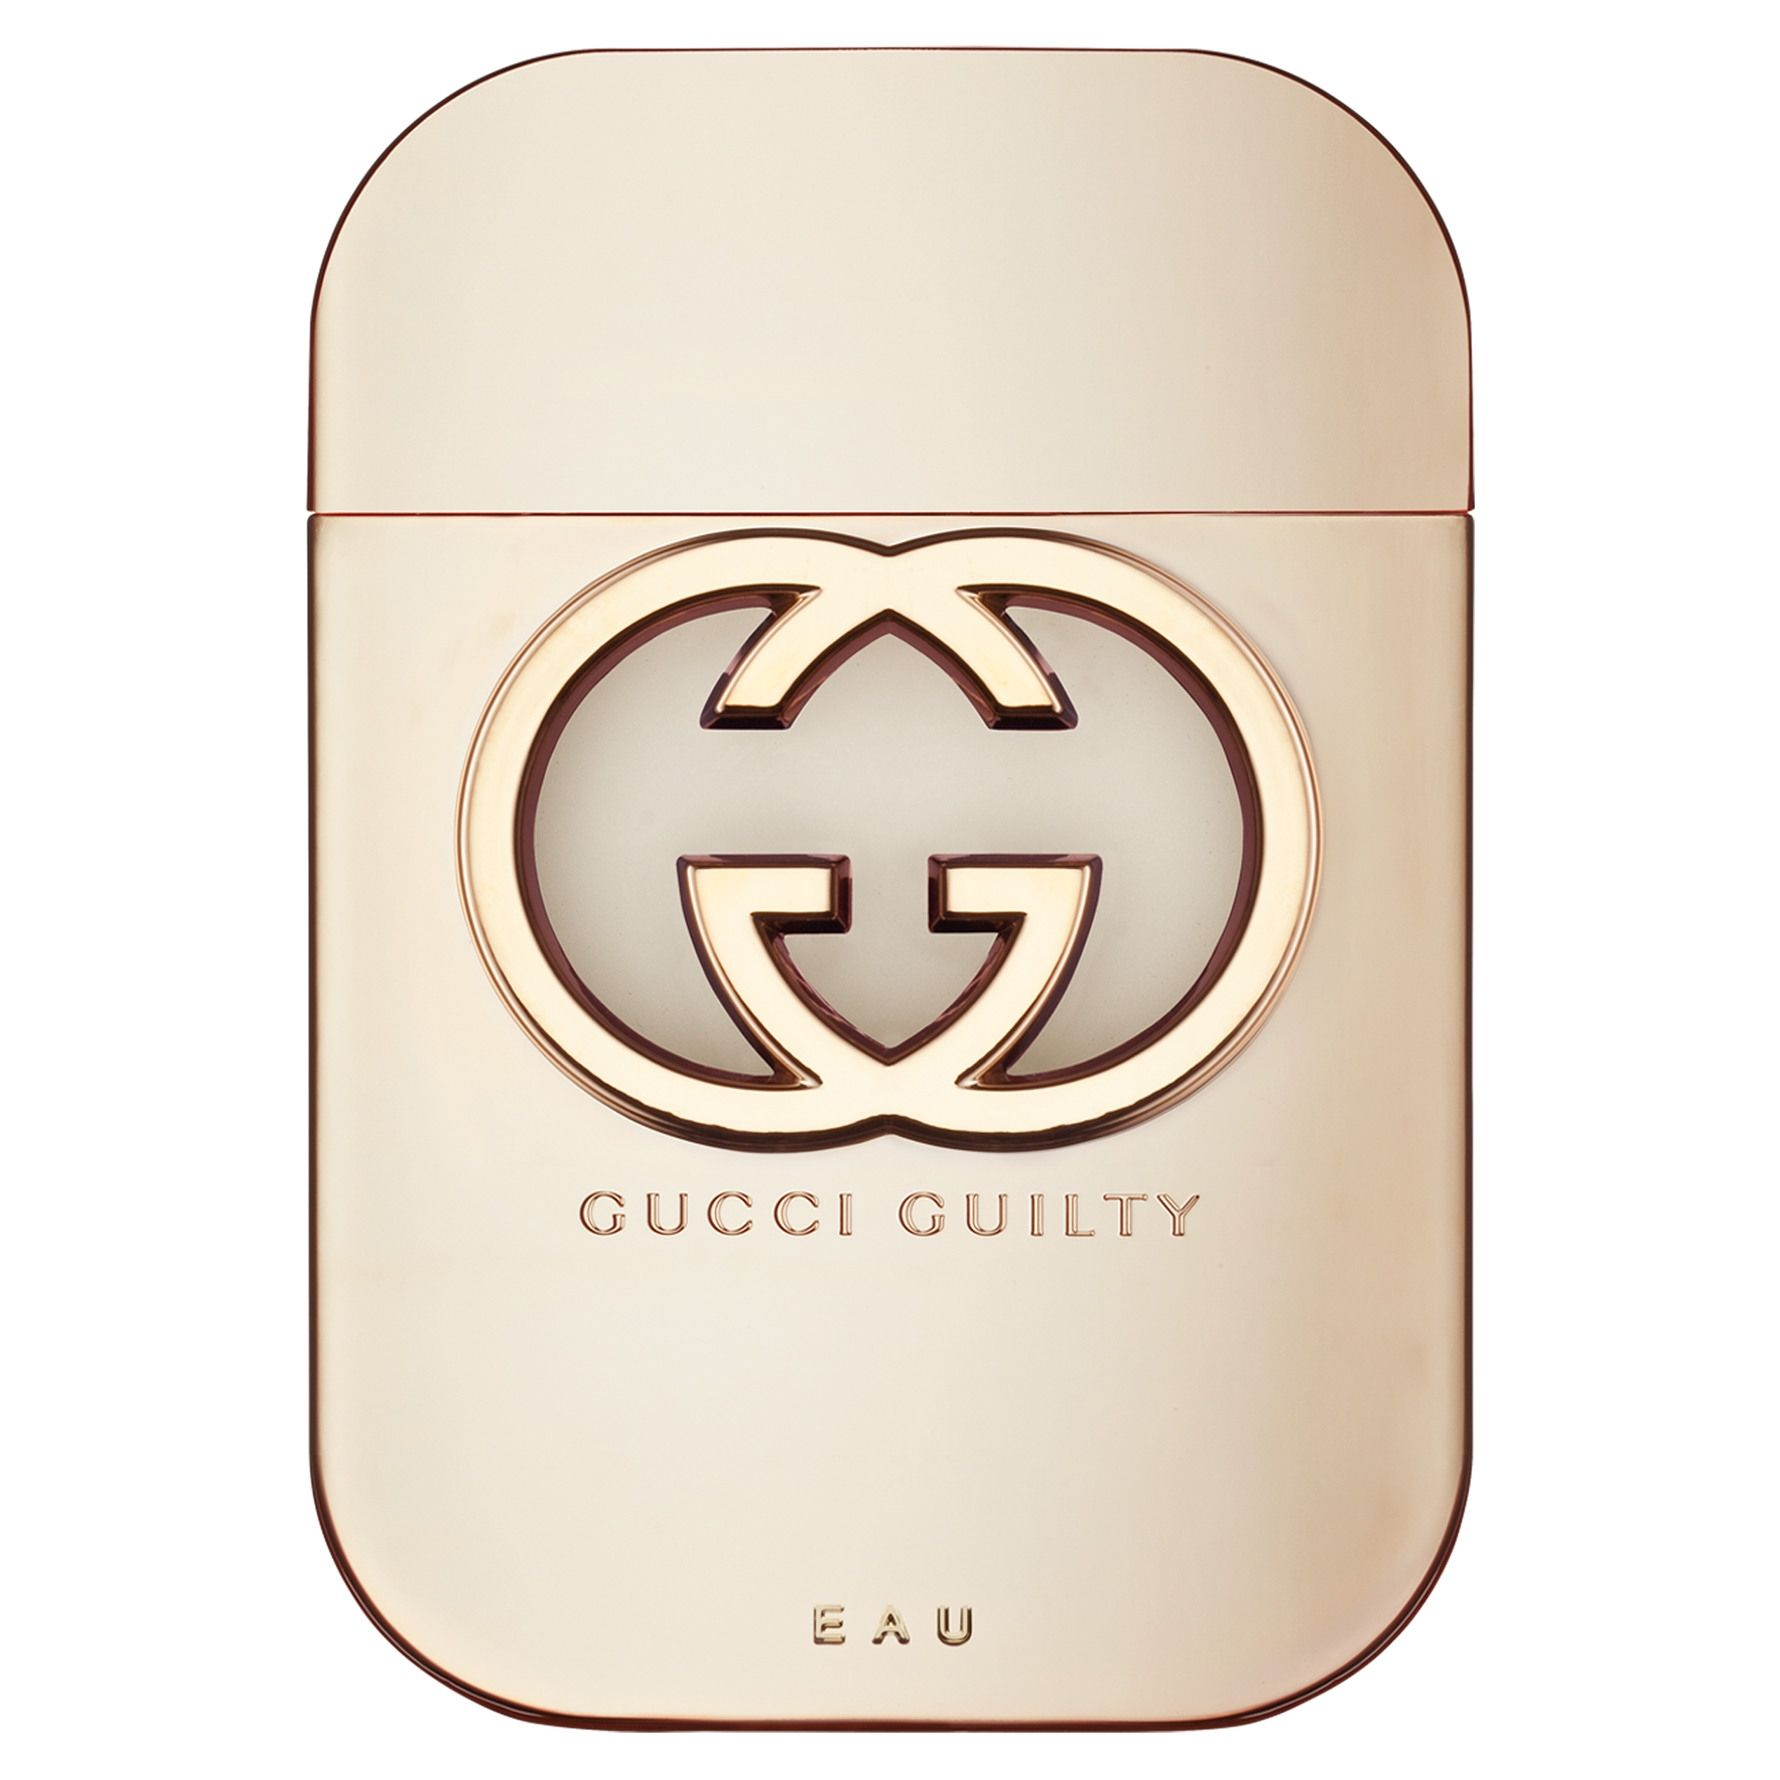 7c1a0696d Gucci Guilty - EDT - For Women - 50 Ml Price in Egypt | Jumia ...